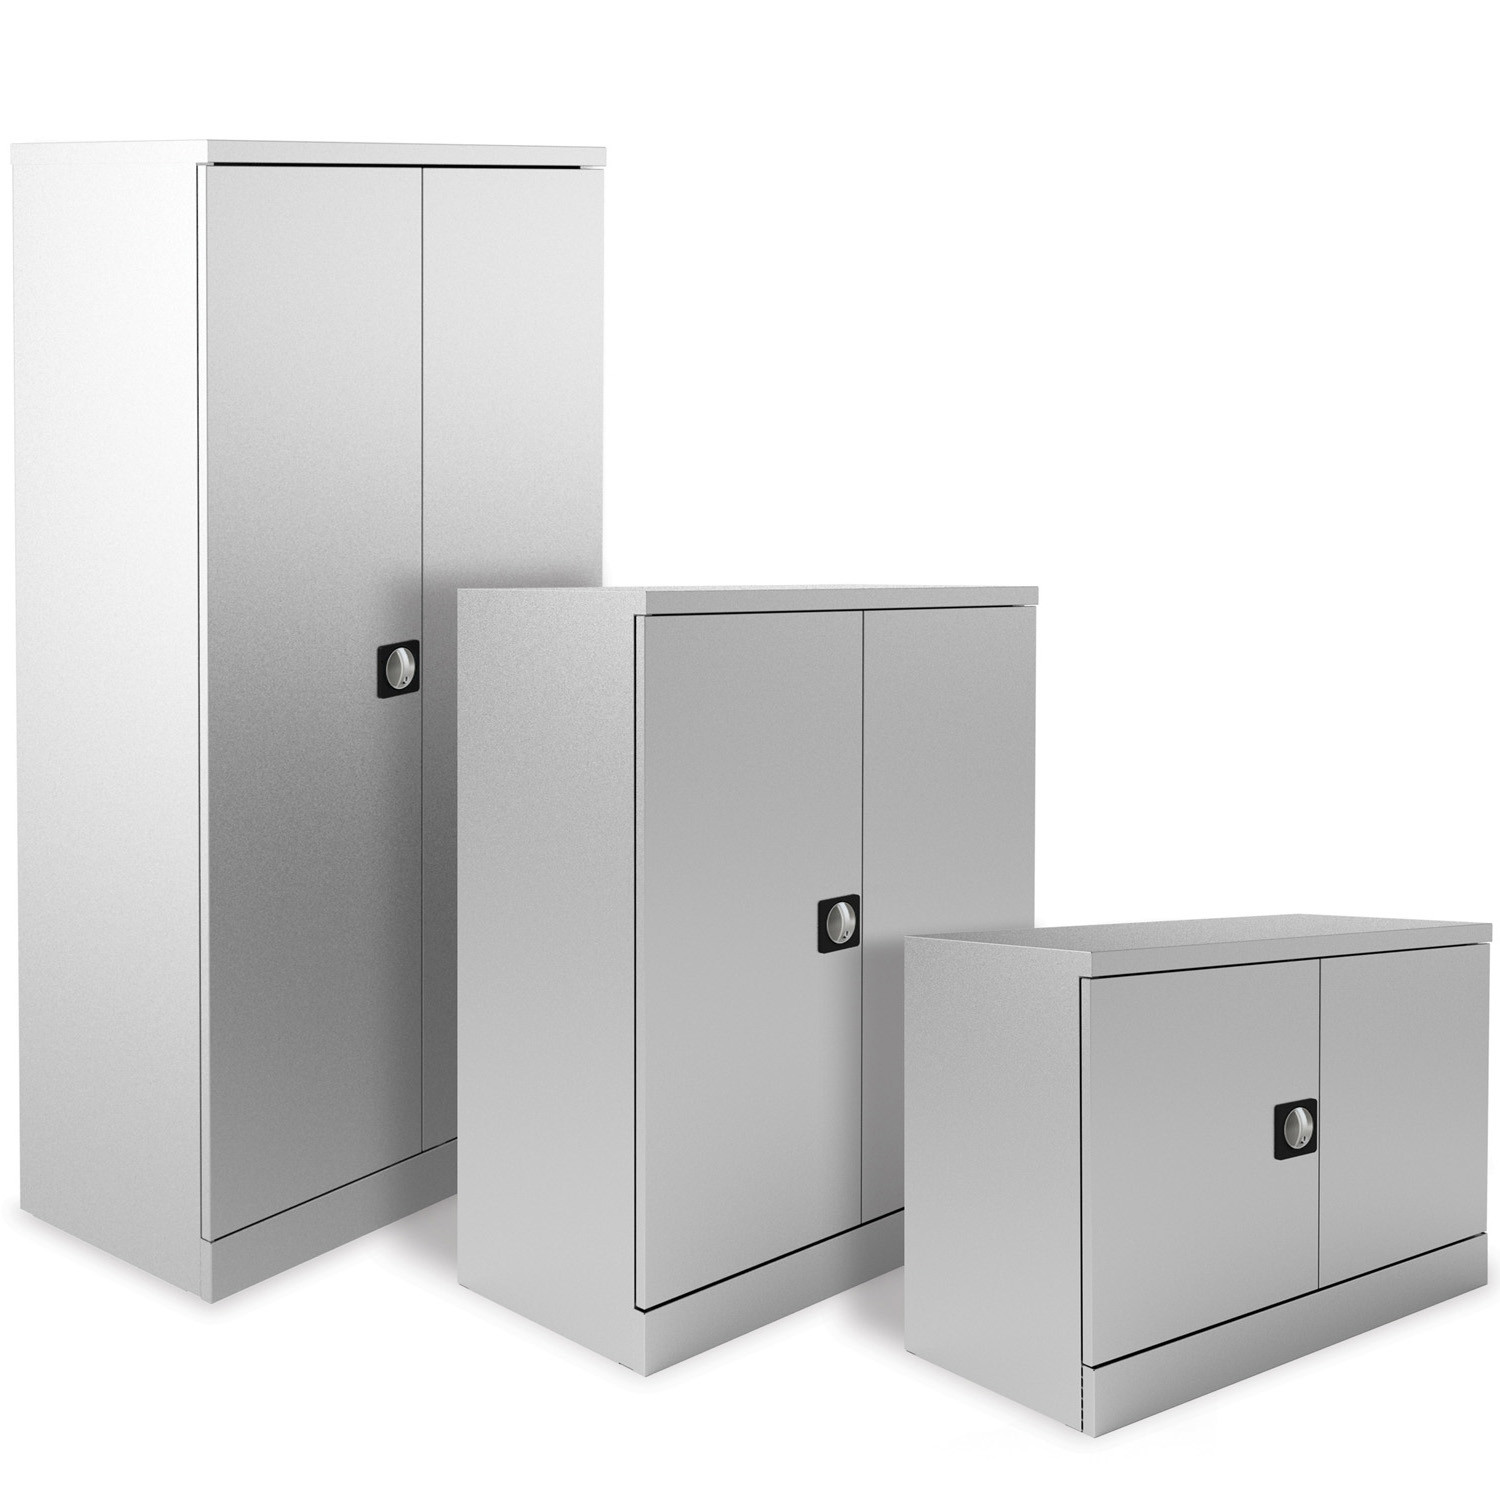 Kontrax Cupboards in various sizes